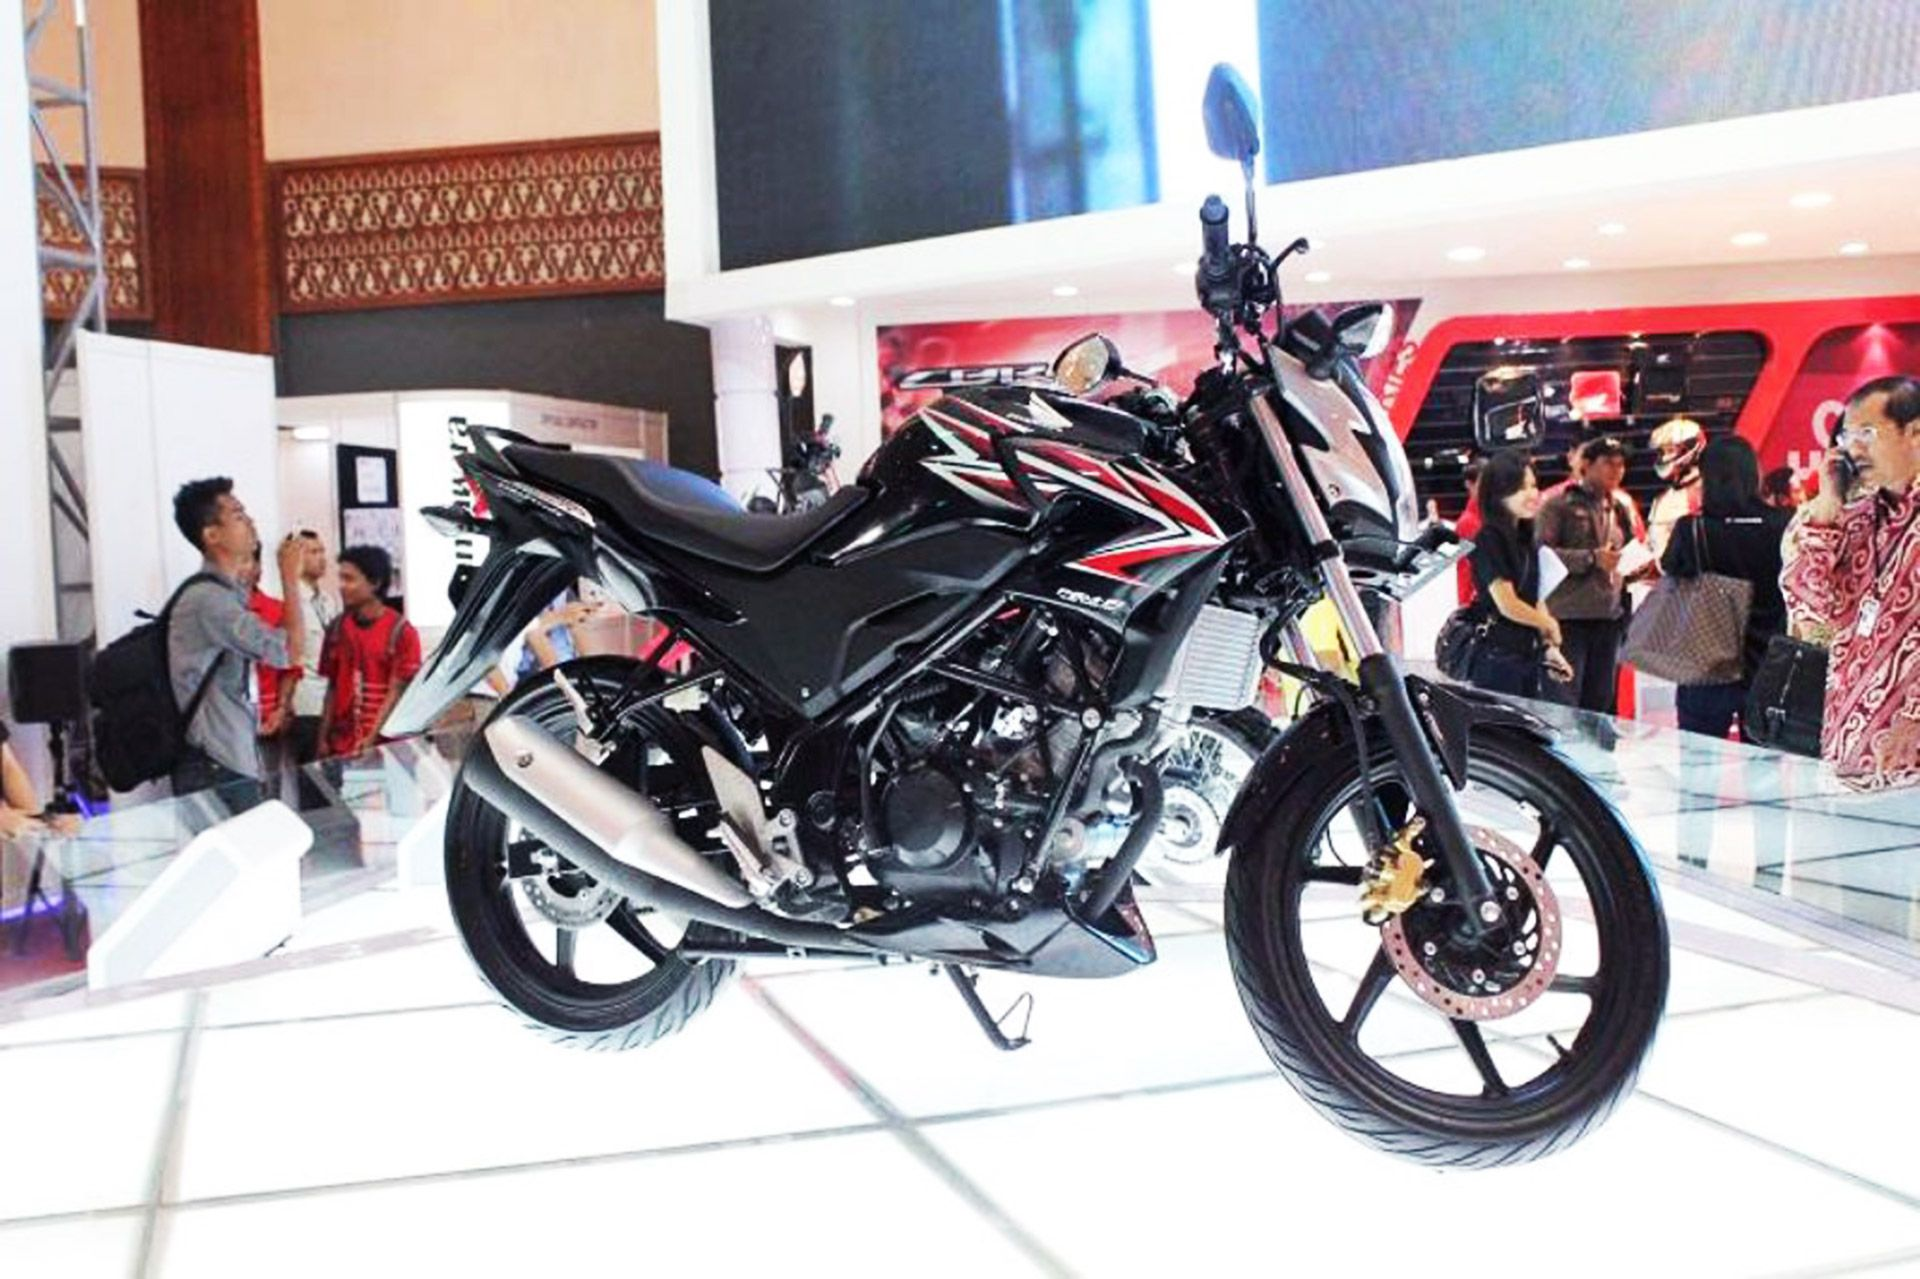 Honda might launch the cb150r streetfighter on 11th march bikewale news pinterest honda and march